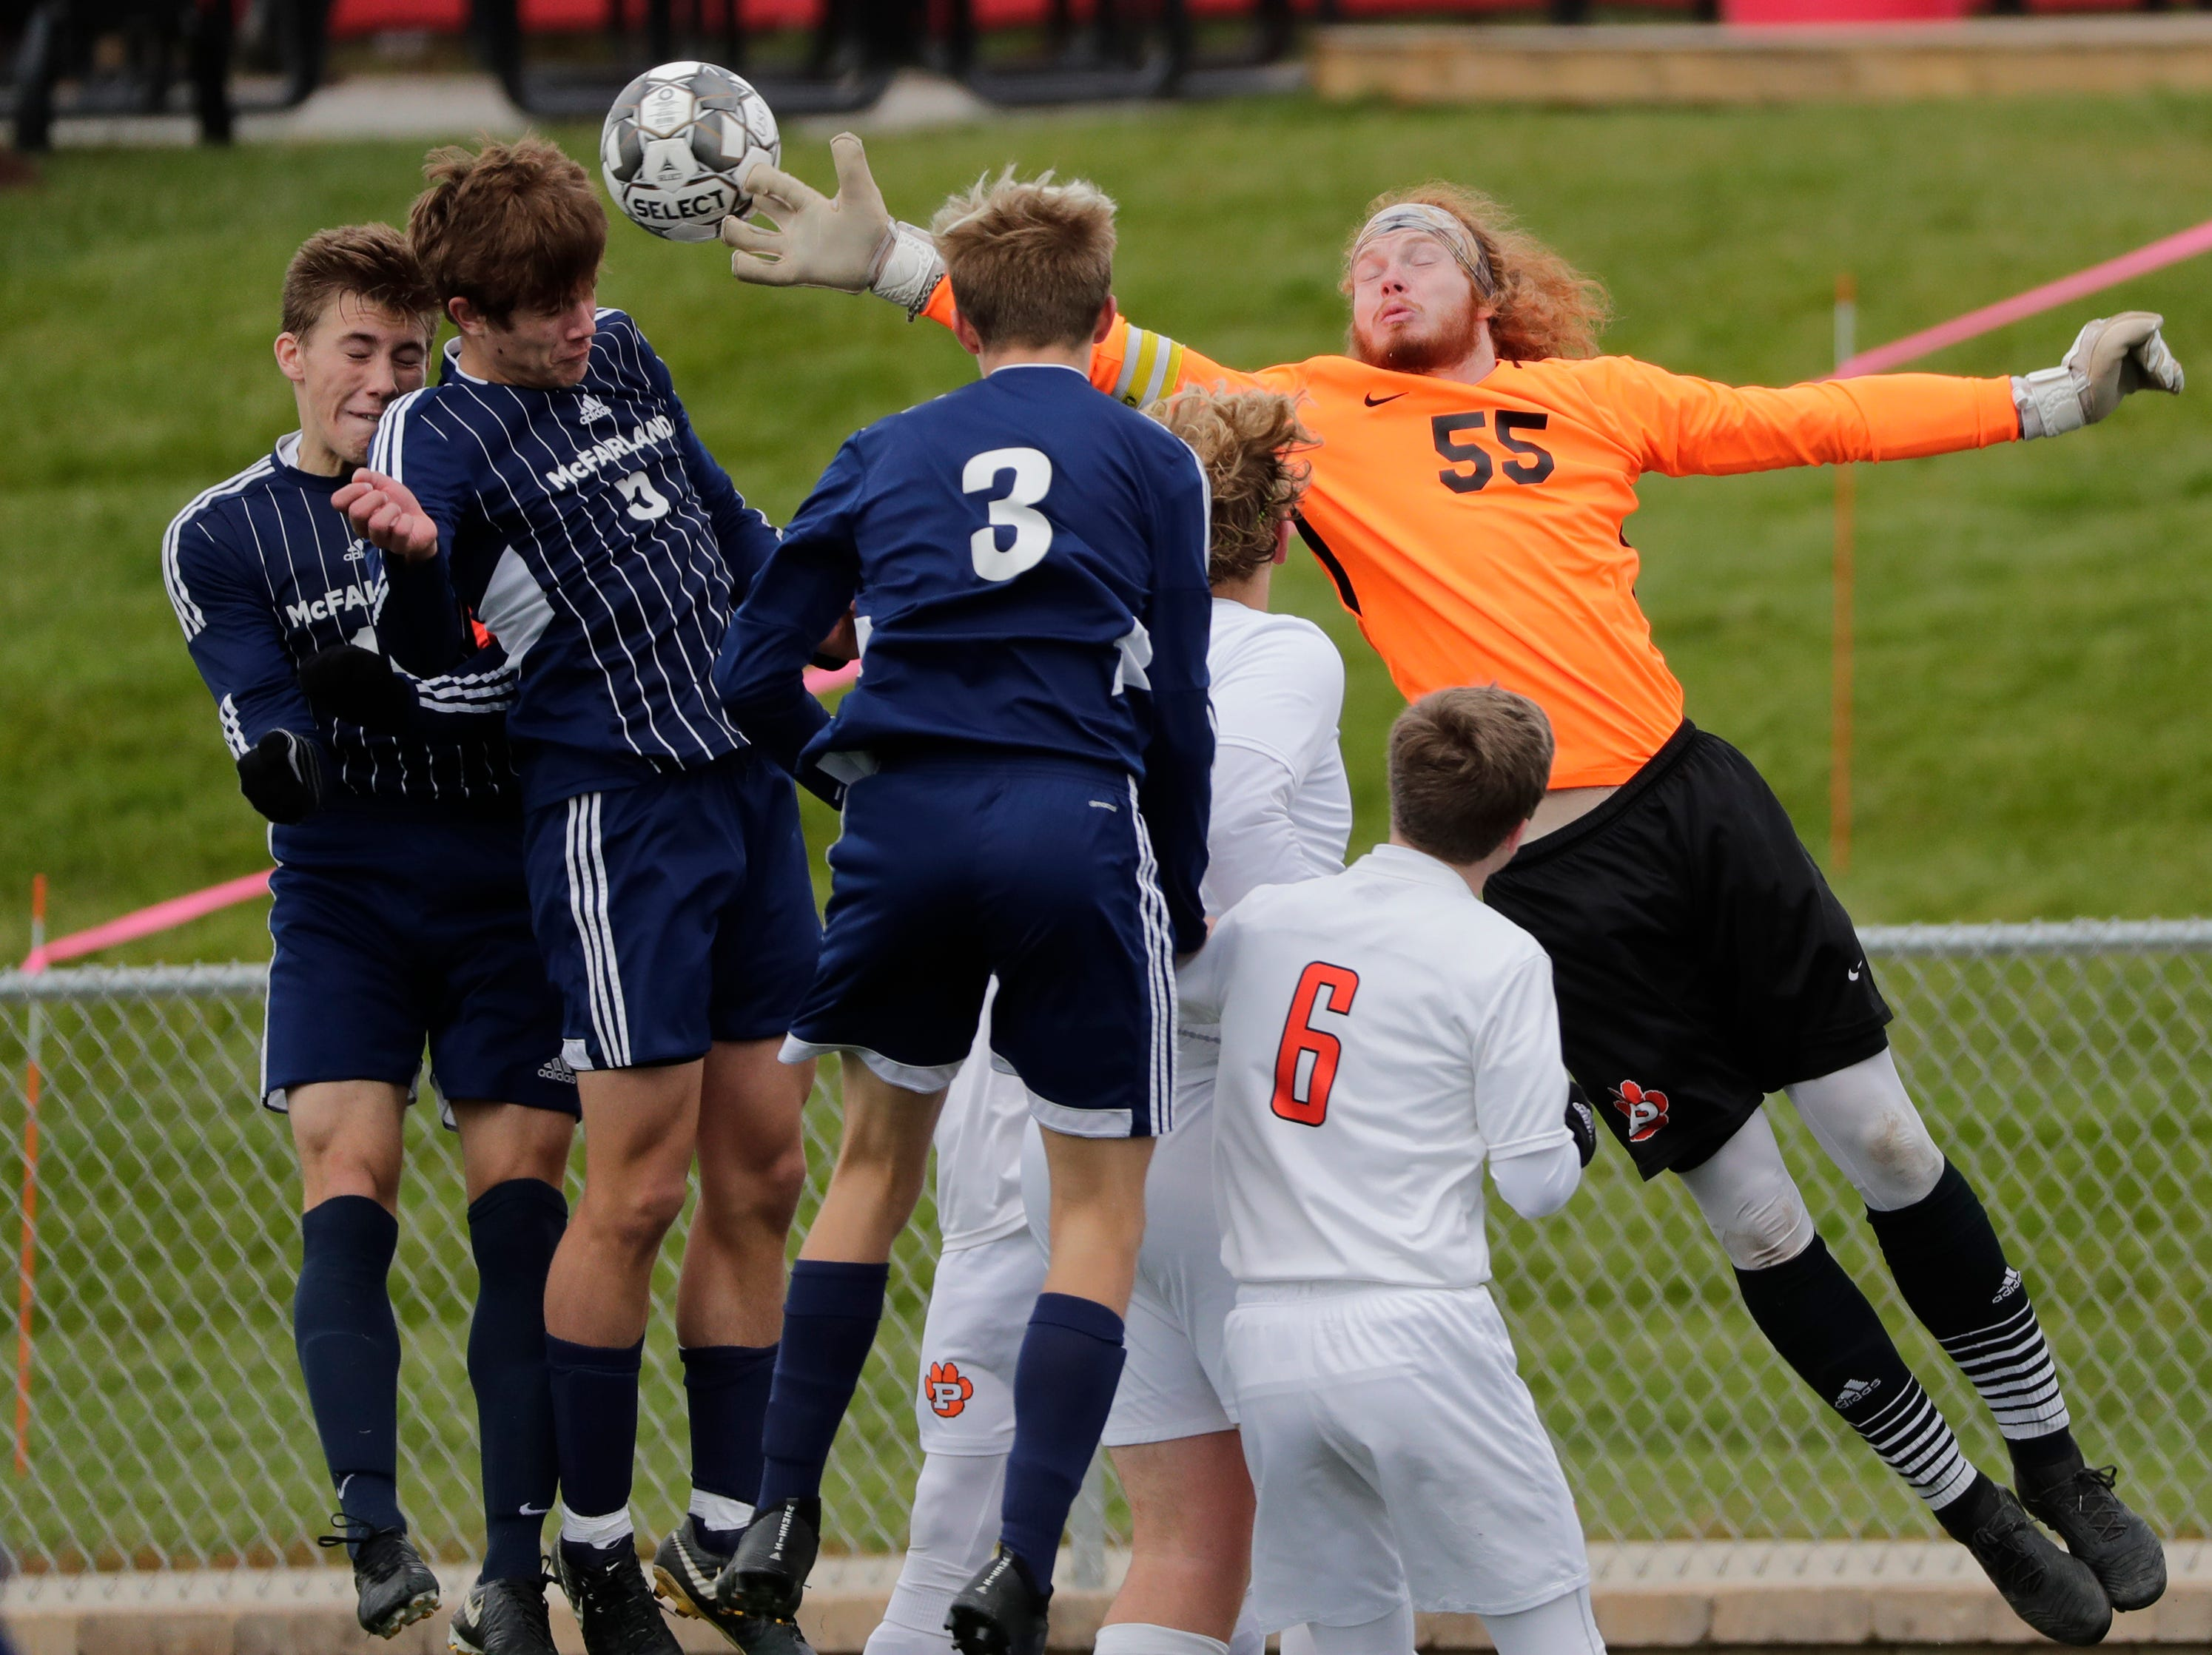 Plymouth High School's goalie Gabe Thull (55) defends on a head ball shot on goal by McFarland High School's Jackson Werwinski (5) during their WIAA Division 3 state semifinal boys soccer game Thursday, November 1, 2018, at Uihlein Soccer Park in Milwaukee, Wis. 